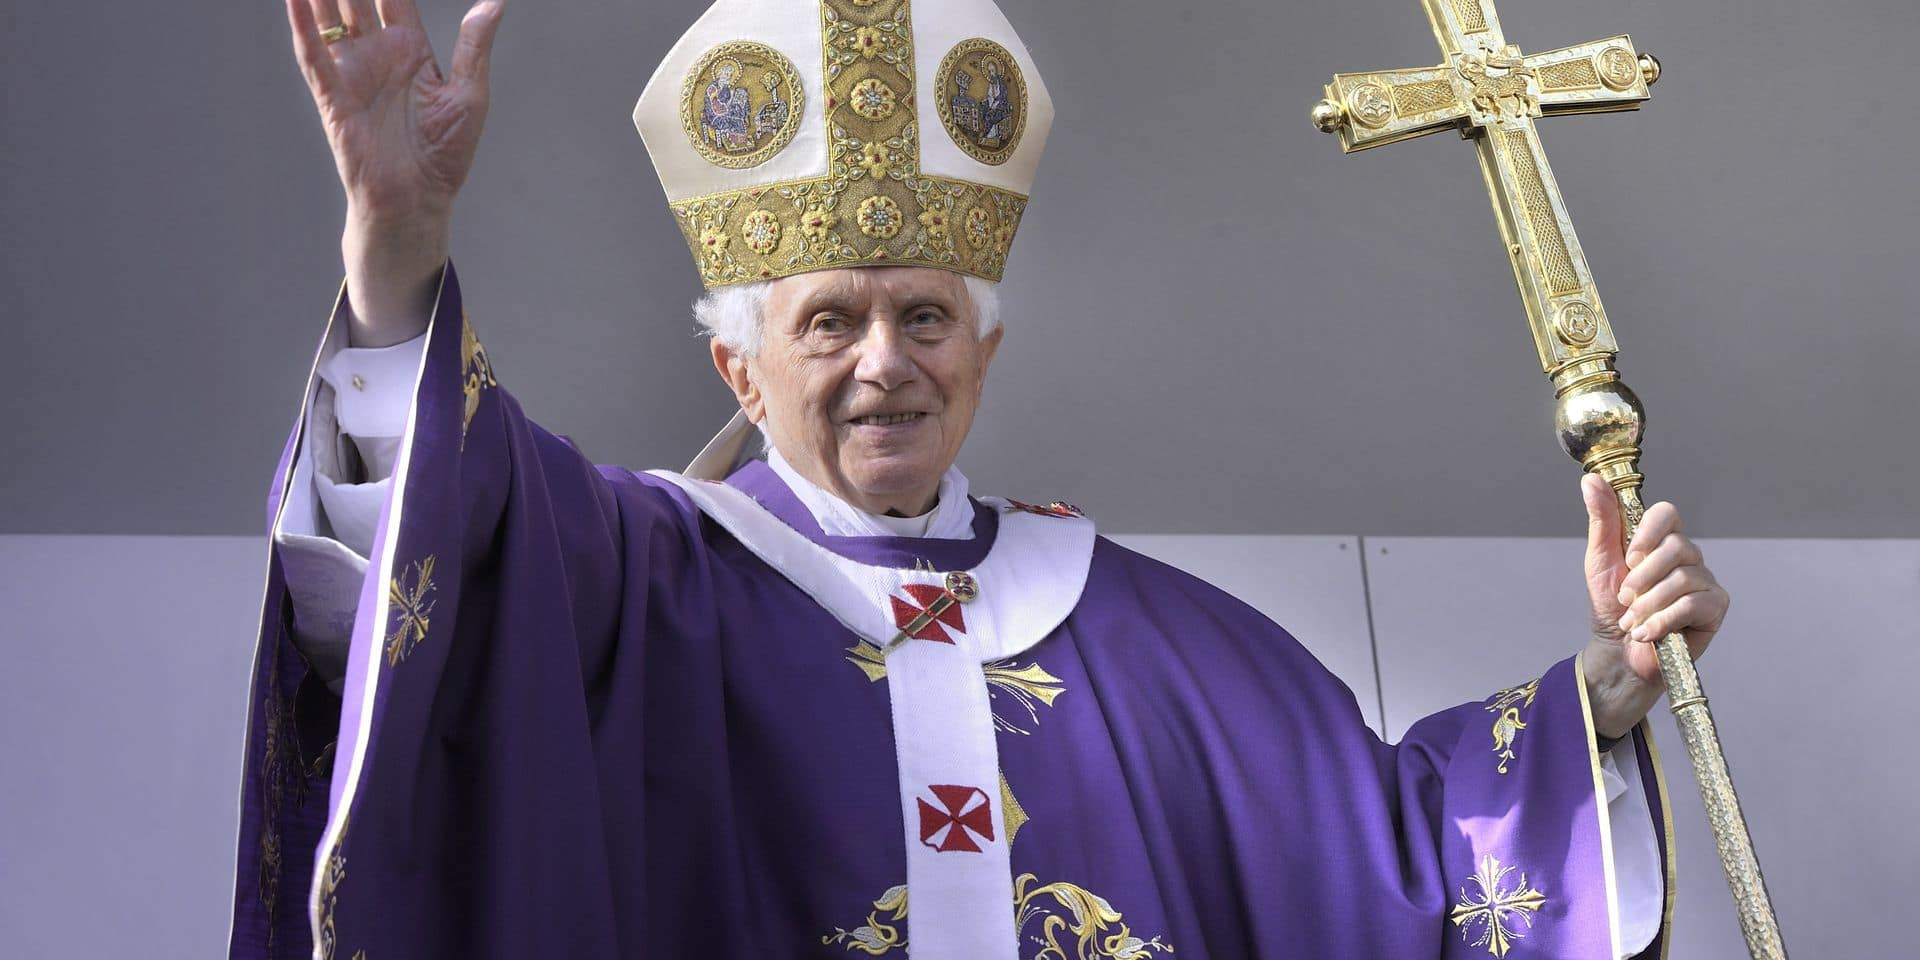 Collected some of the most interesting pictures of the Pope to the end of his pontificate illustrated That will be the end of February 28, 2013